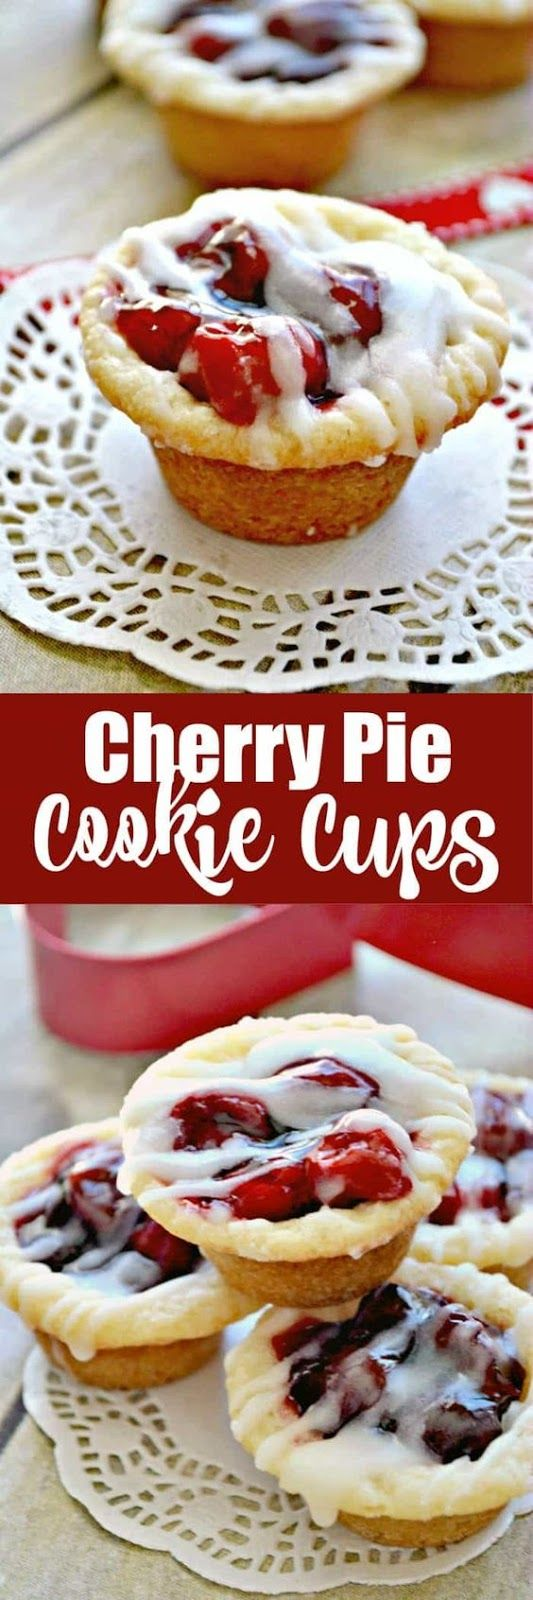 Cherry Pie Cookie Cups Recipe - Dishes and Cooking